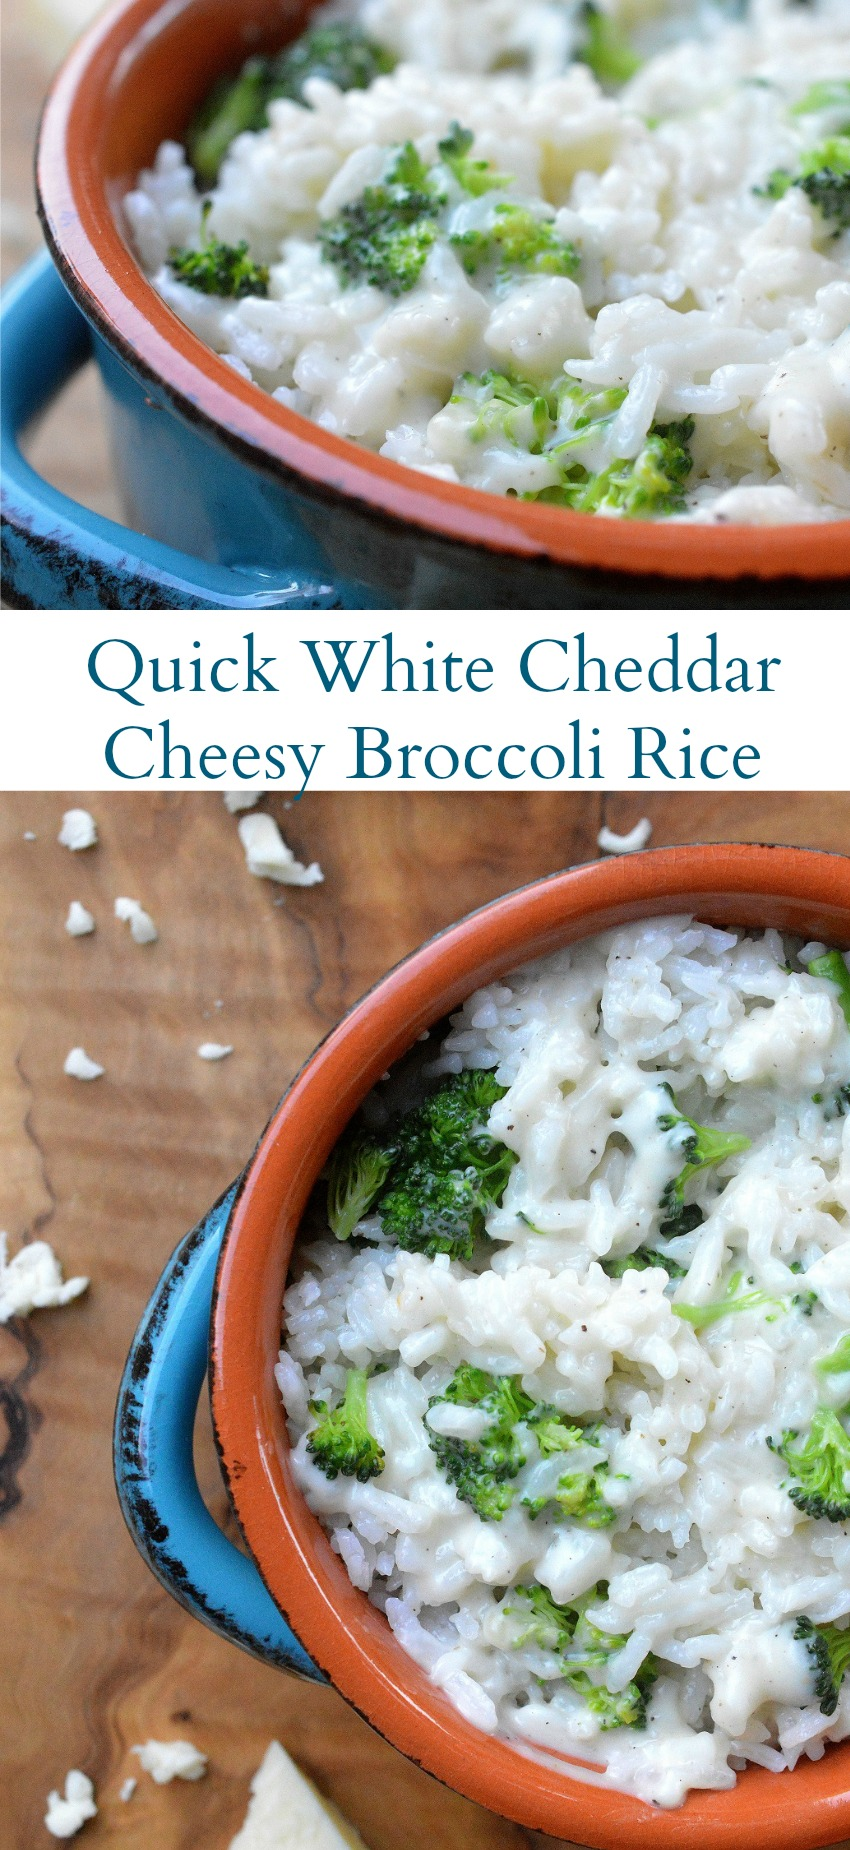 White Cheddar Cheesy Broccoli Rice. Made in 20 minutes are less and a family favorite!